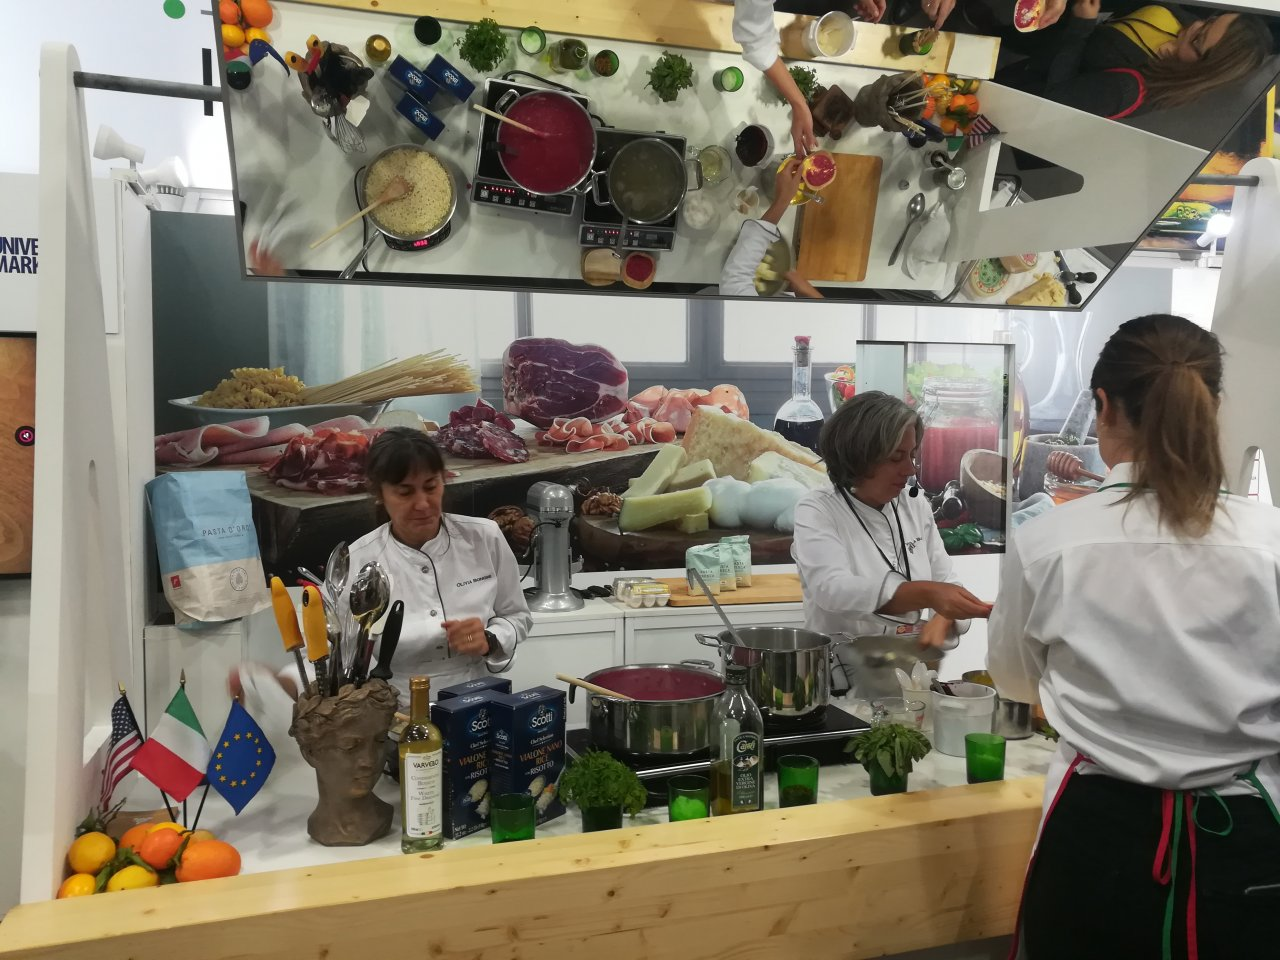 2019 Winter Fancy Food Show (WFFS): Moscone Convention